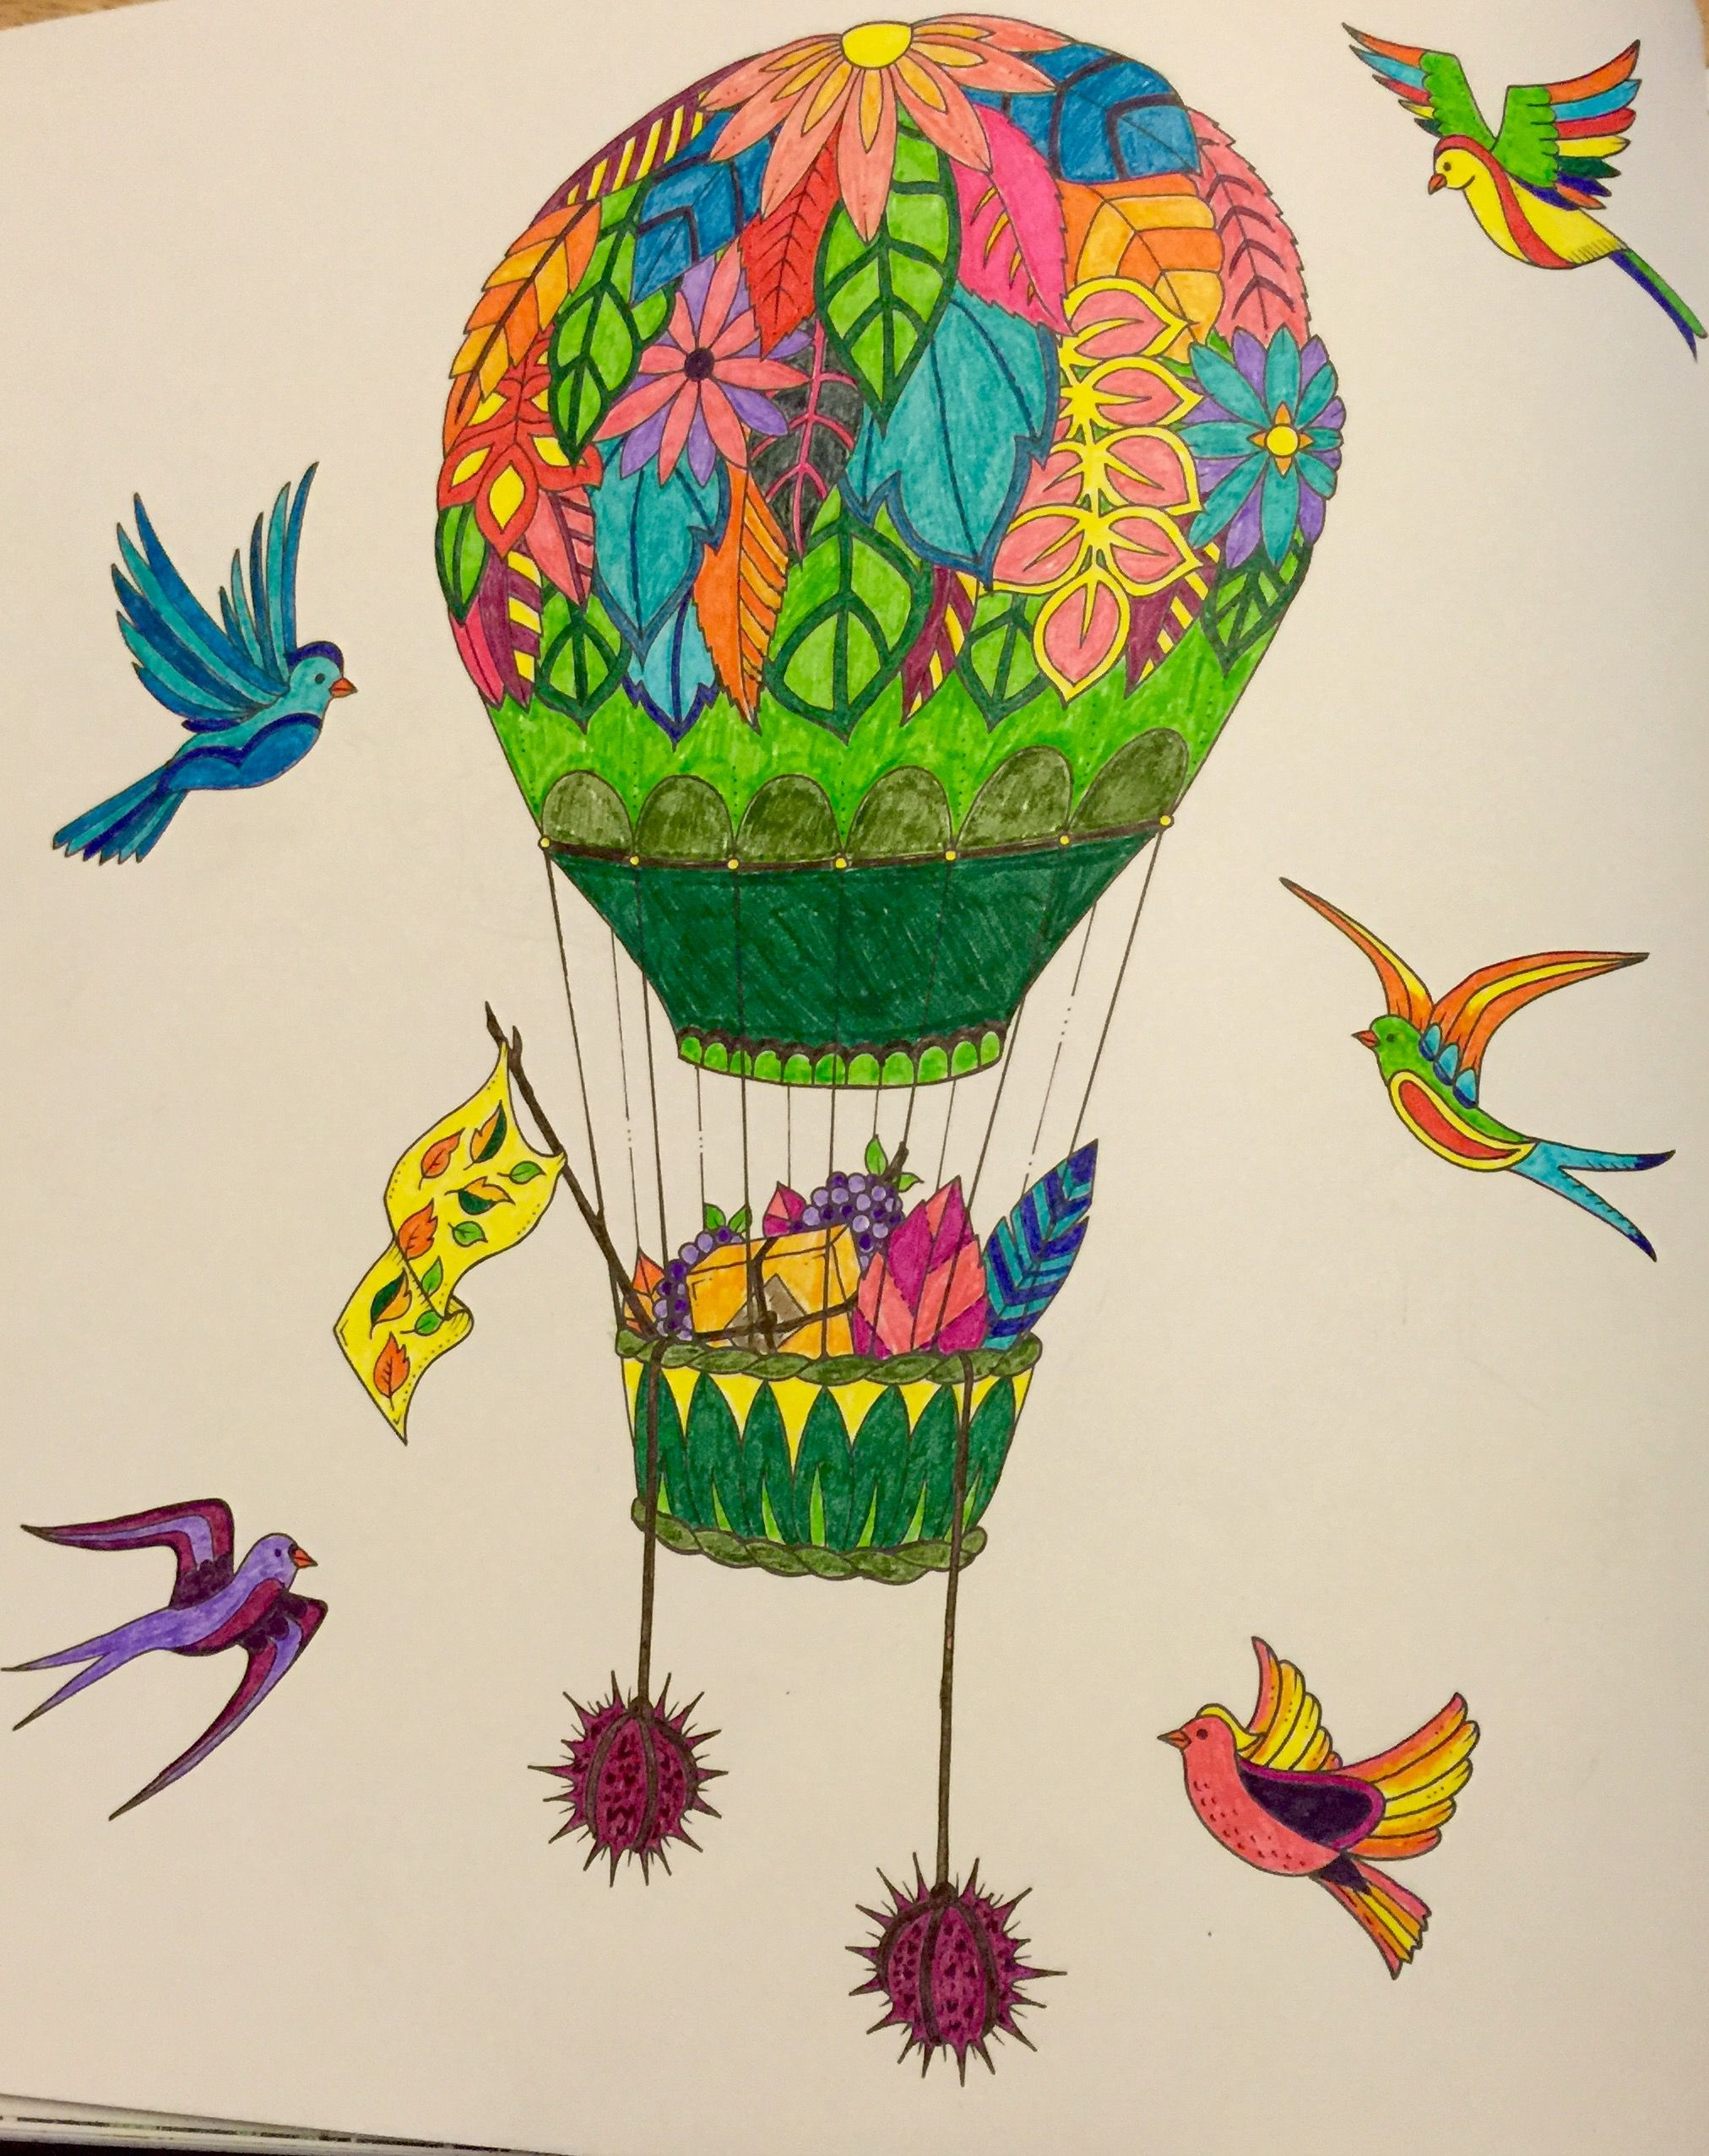 Air Balloon Enchanted Forest Coloring Book